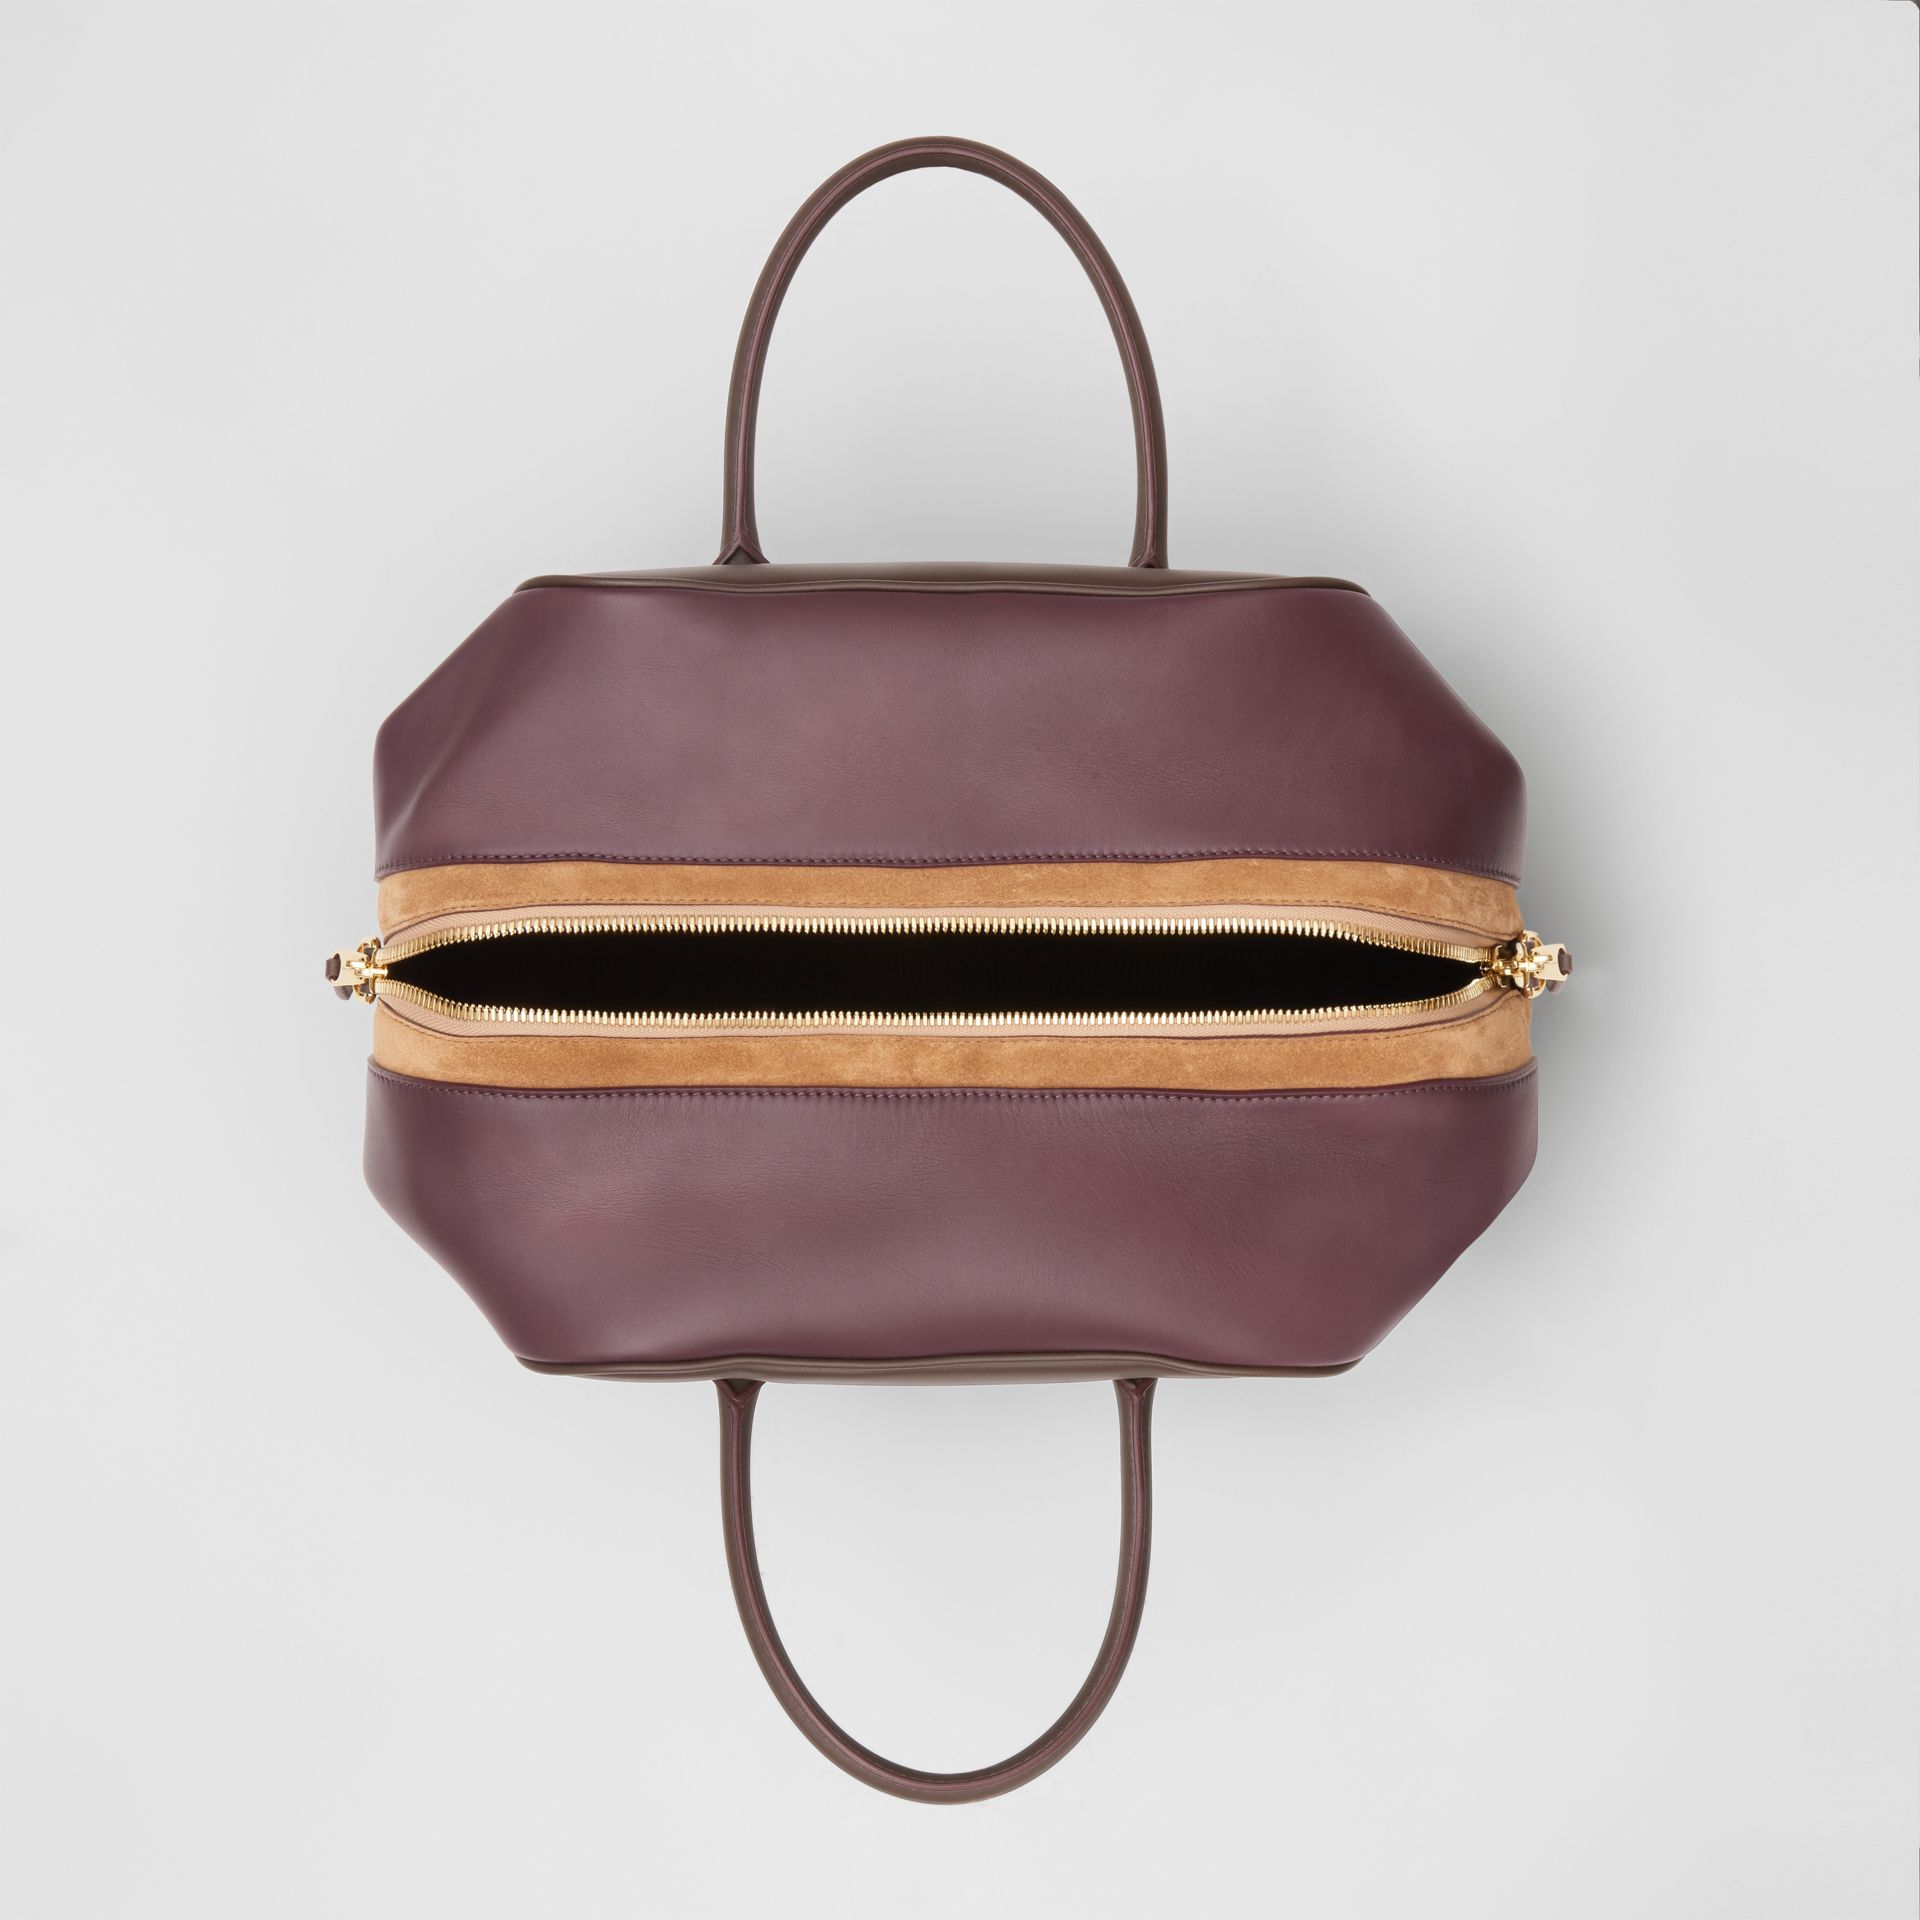 Medium Leather and Suede Cube Bag in Mahogany - Women | Burberry - gallery image 4